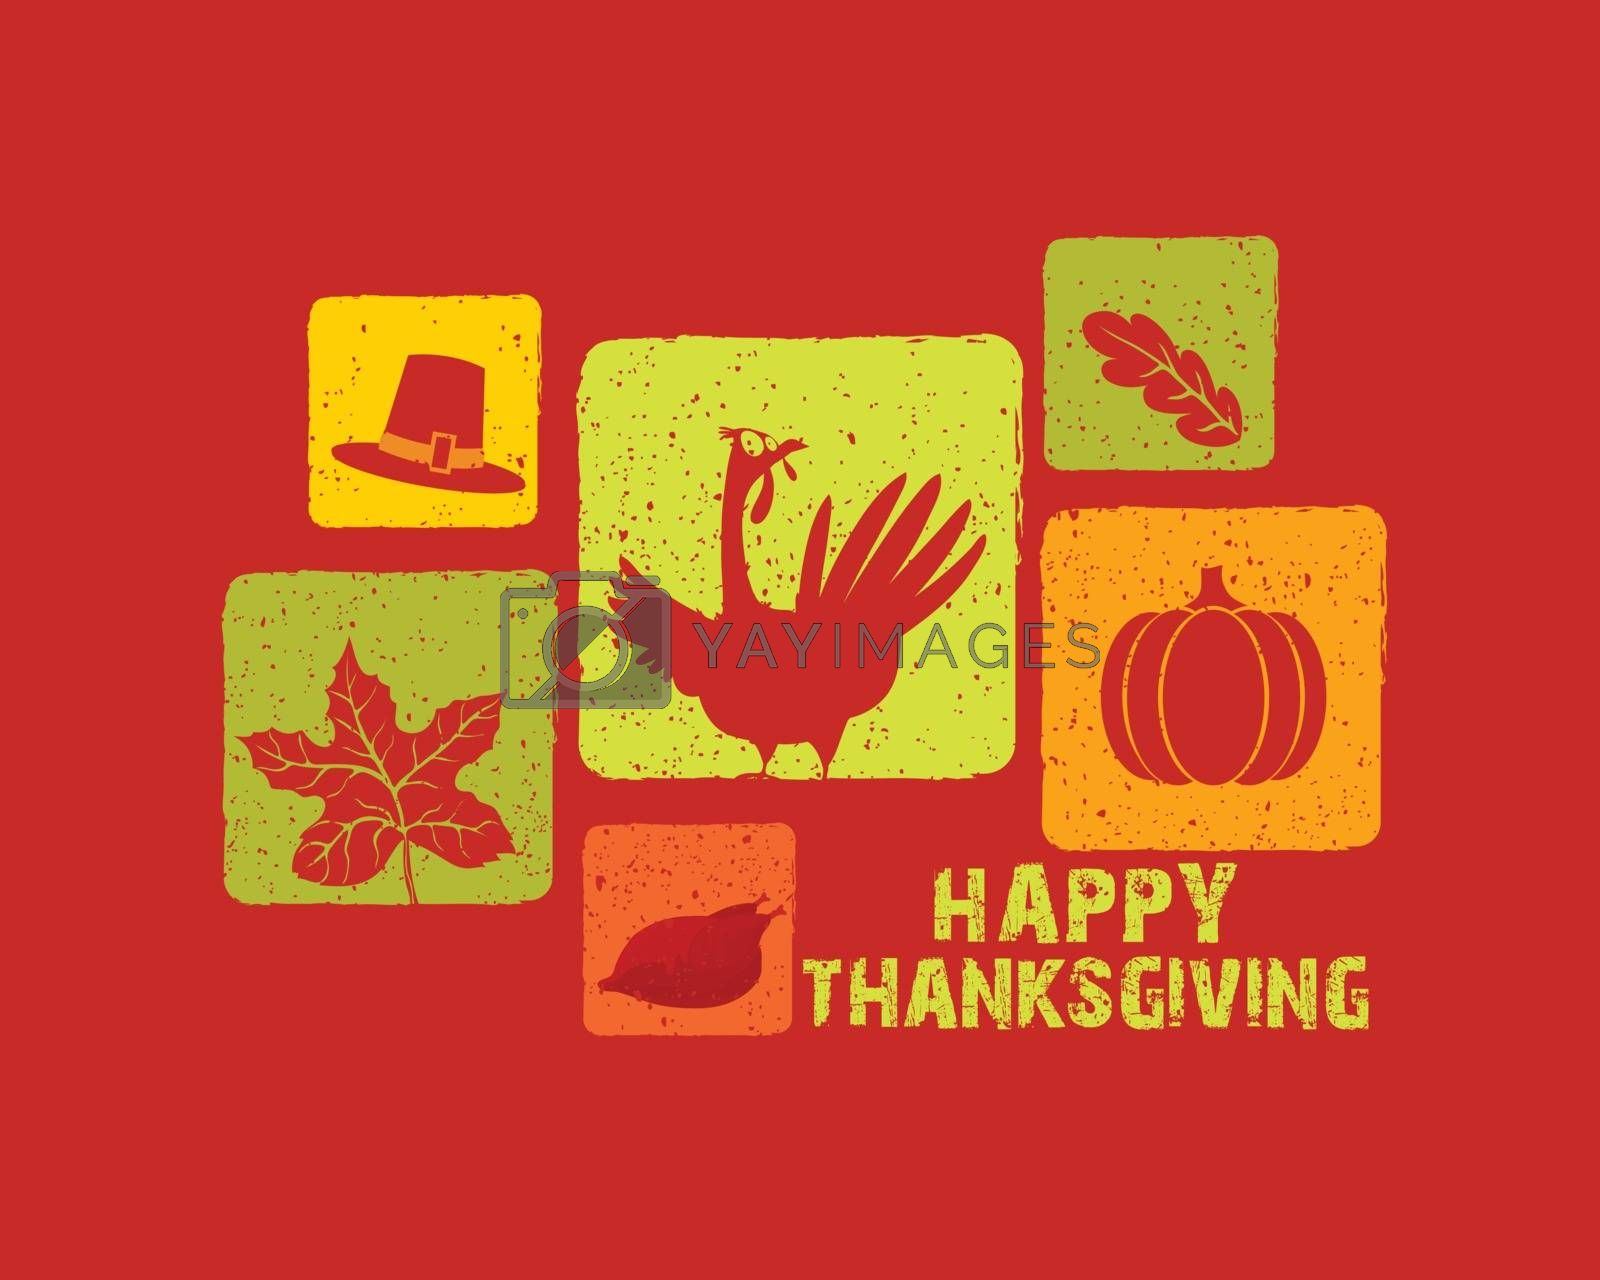 Creative background with different symbols for Happy Thanksgiving Day celebration.